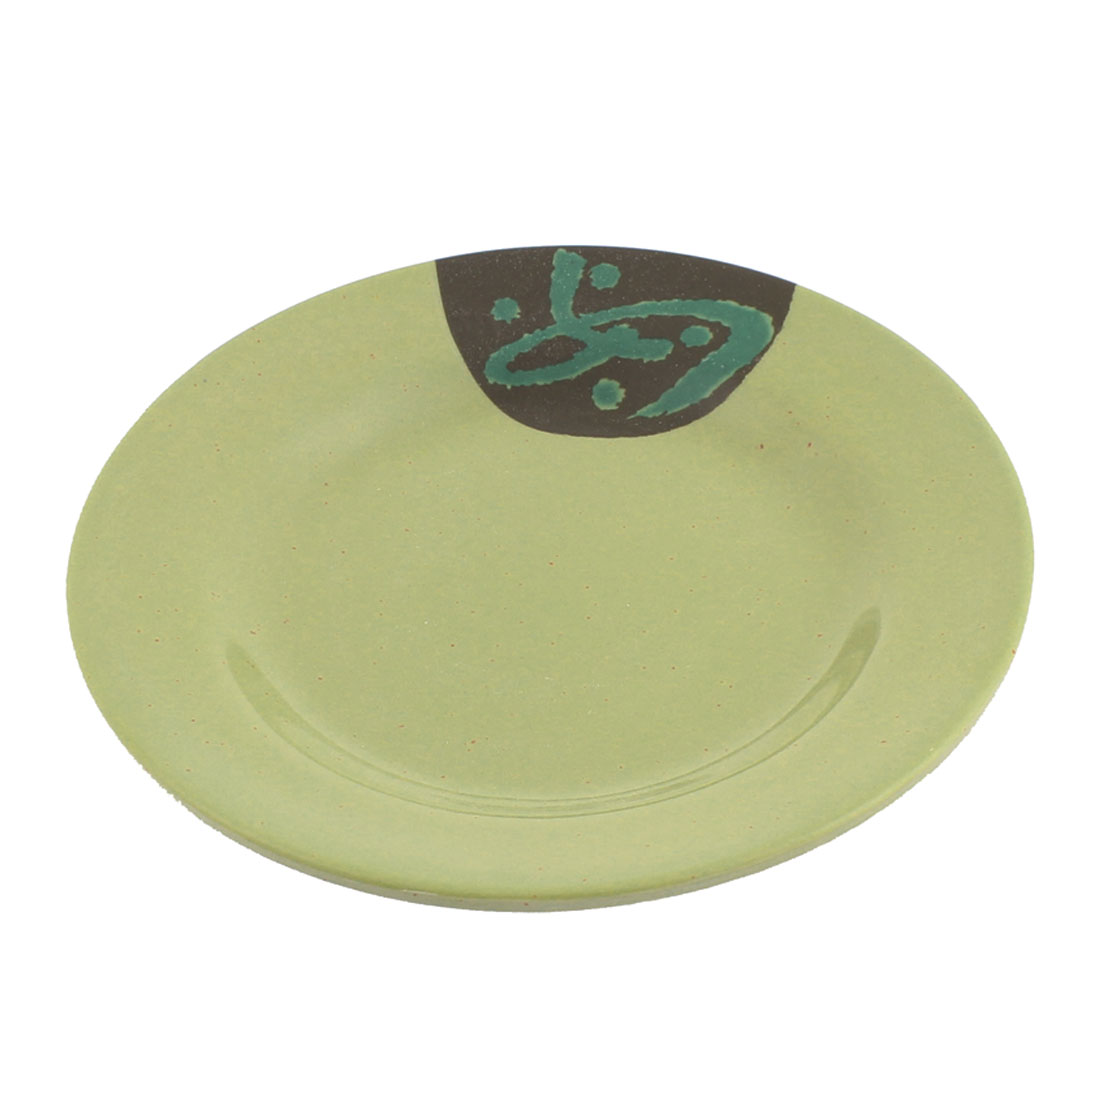 Kitchen Restaurant Round Shape Tableware Plastic Dinner Plate 6 Inch Dia